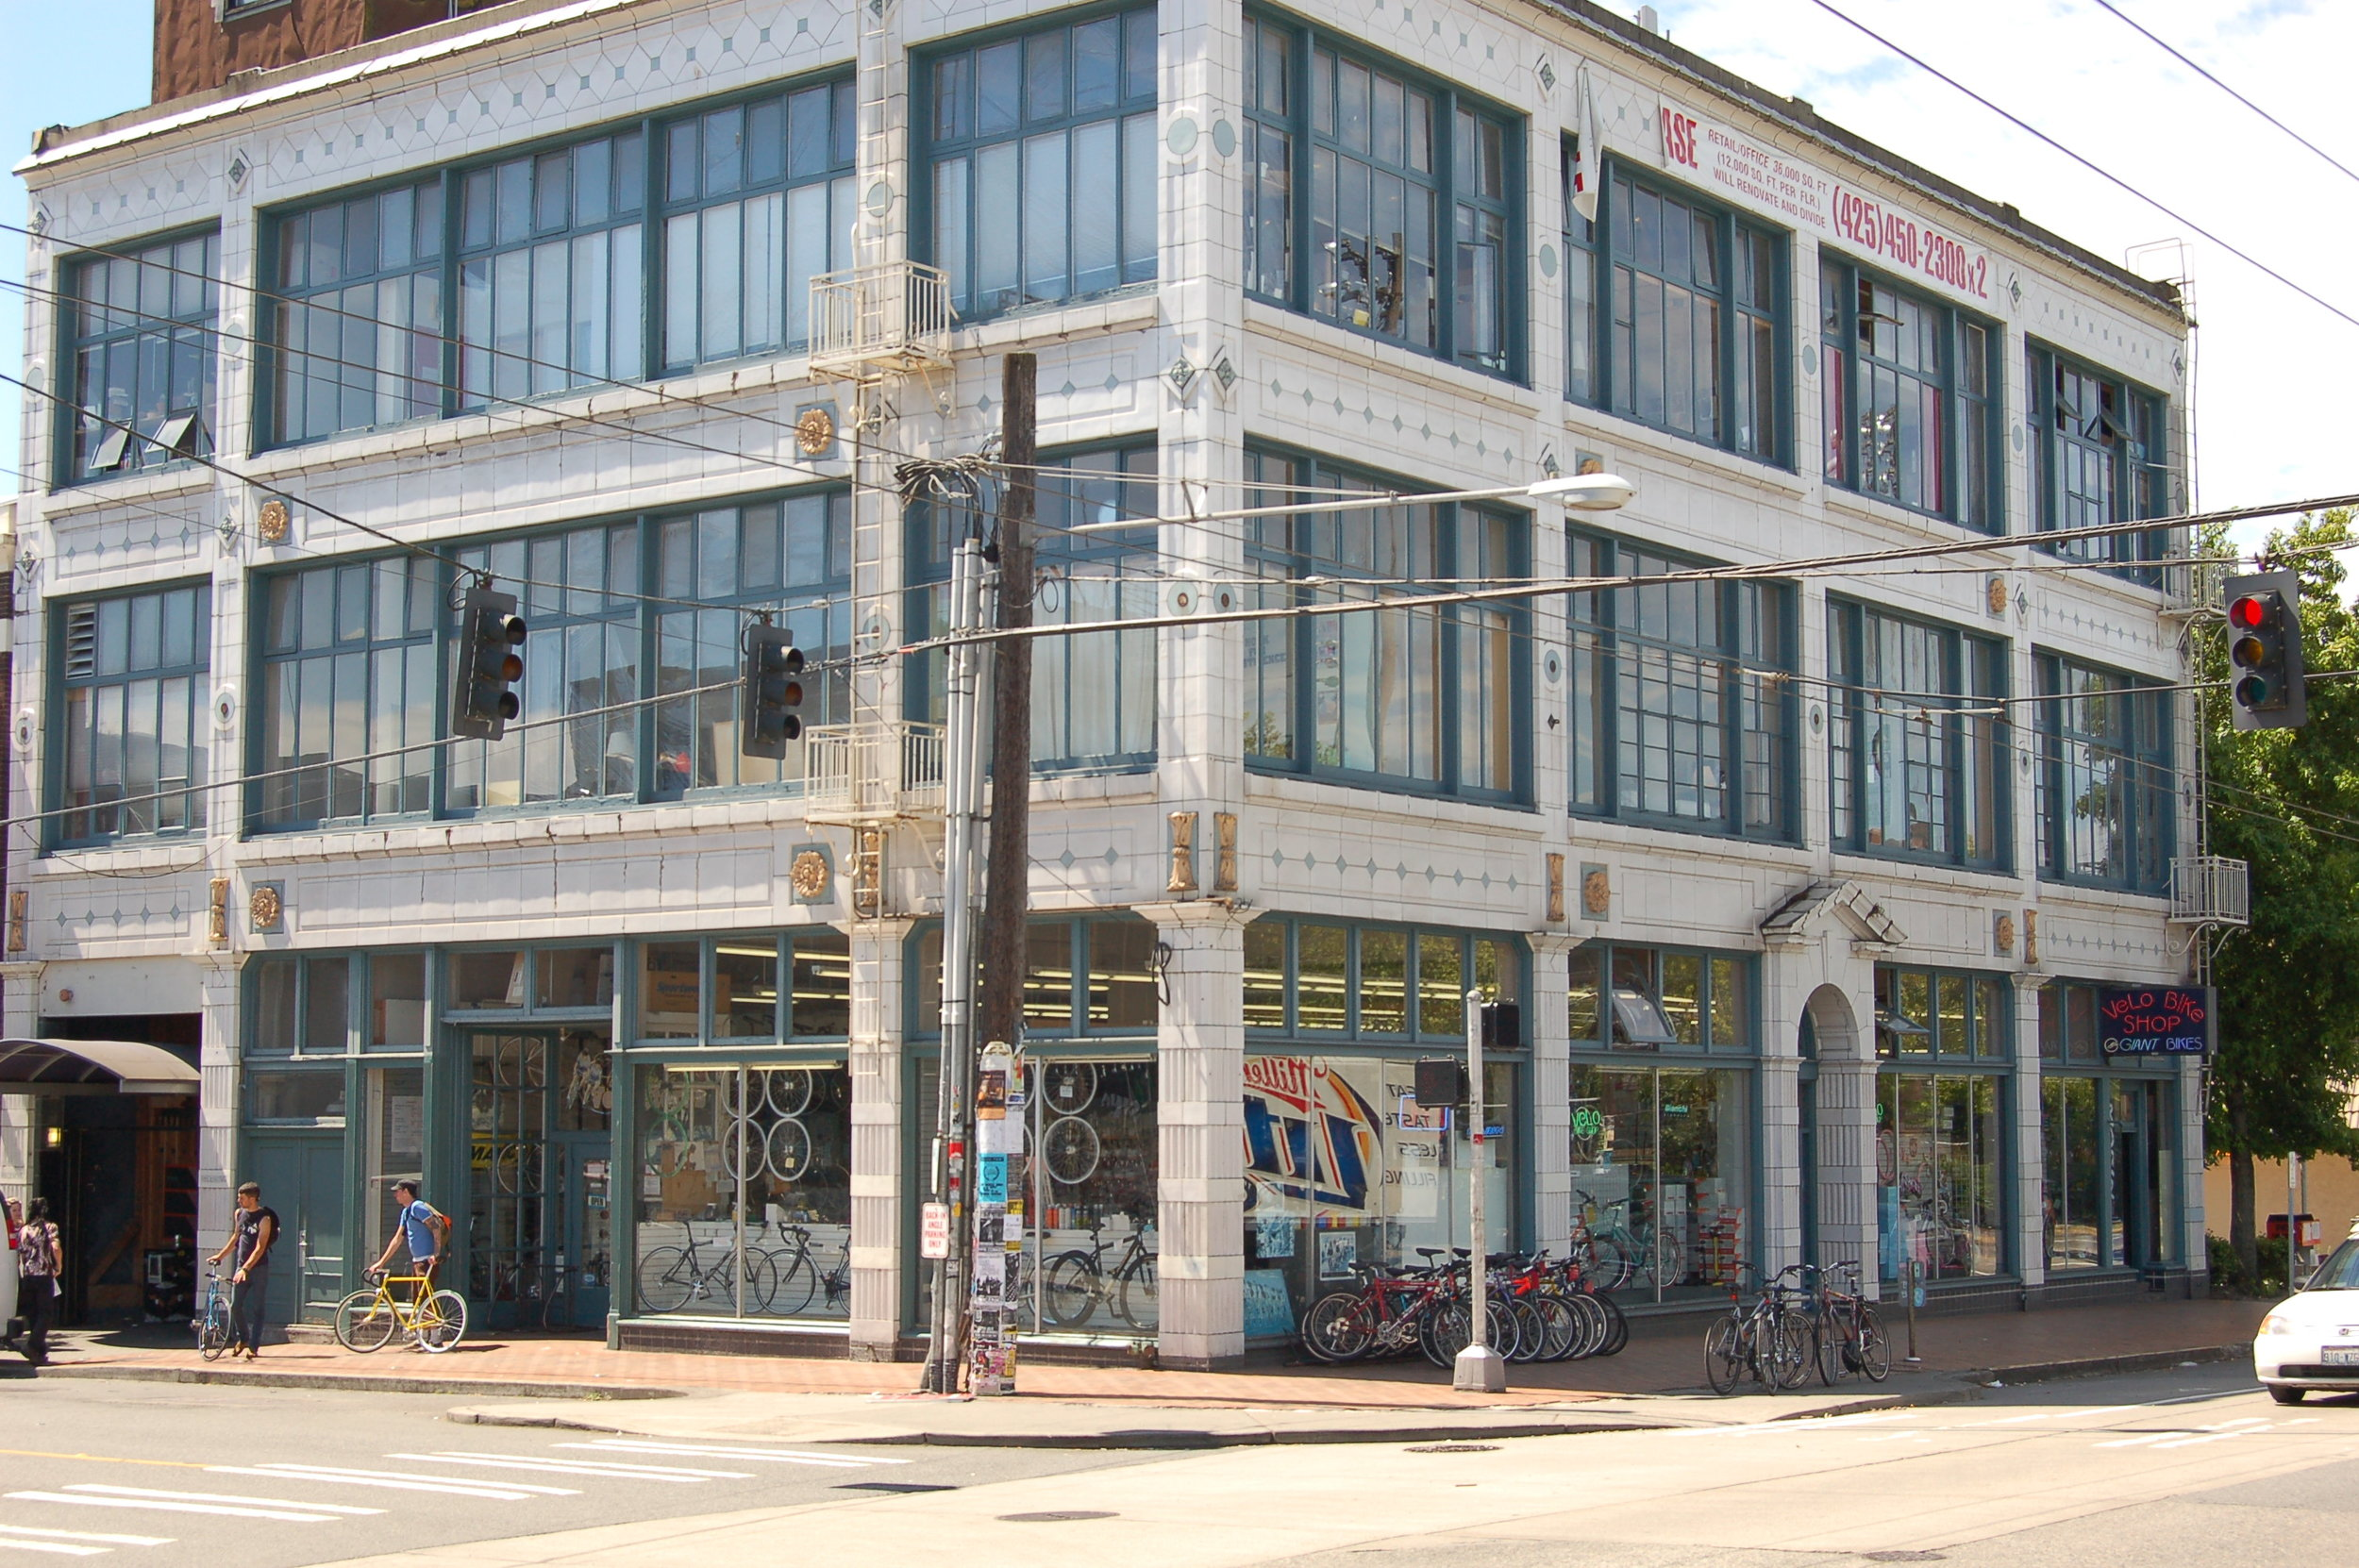 Velo Bike Shop location from 1985 - 2013 at 11th Ave. & Pine St.